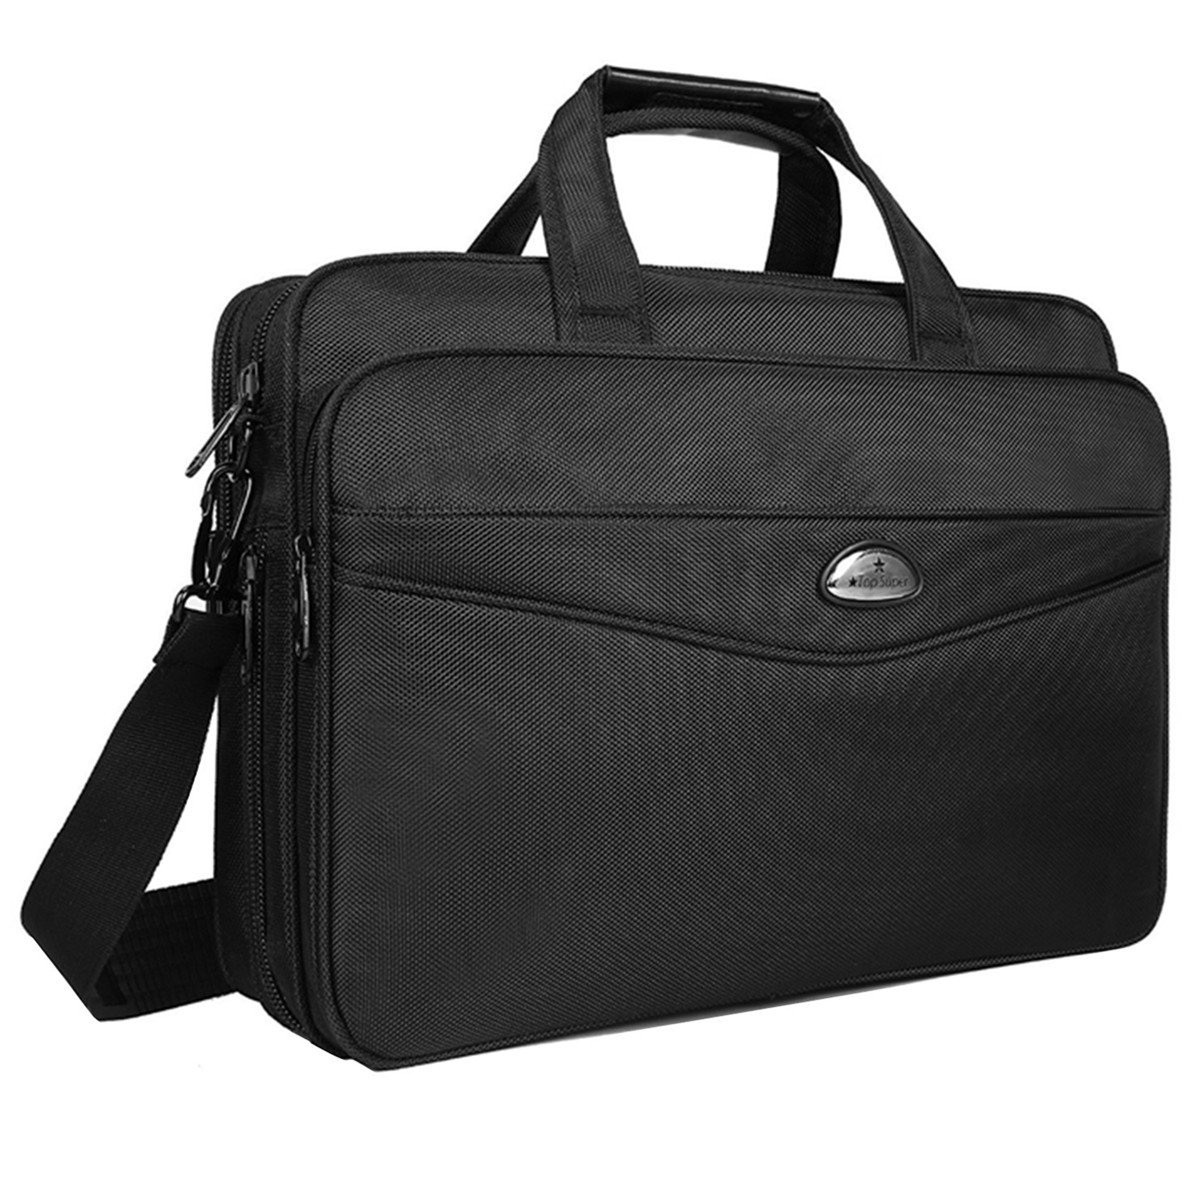 Briefcase 15.6 Inch Laptop Bag Laptop Messenger Bag, Business Office Bag Multifunctional Laptop Case Shoulder Bags for Men Women Fit for 15'' 15.6 Inch Acer HP Dell Lenovo Computer Notebook MacBook